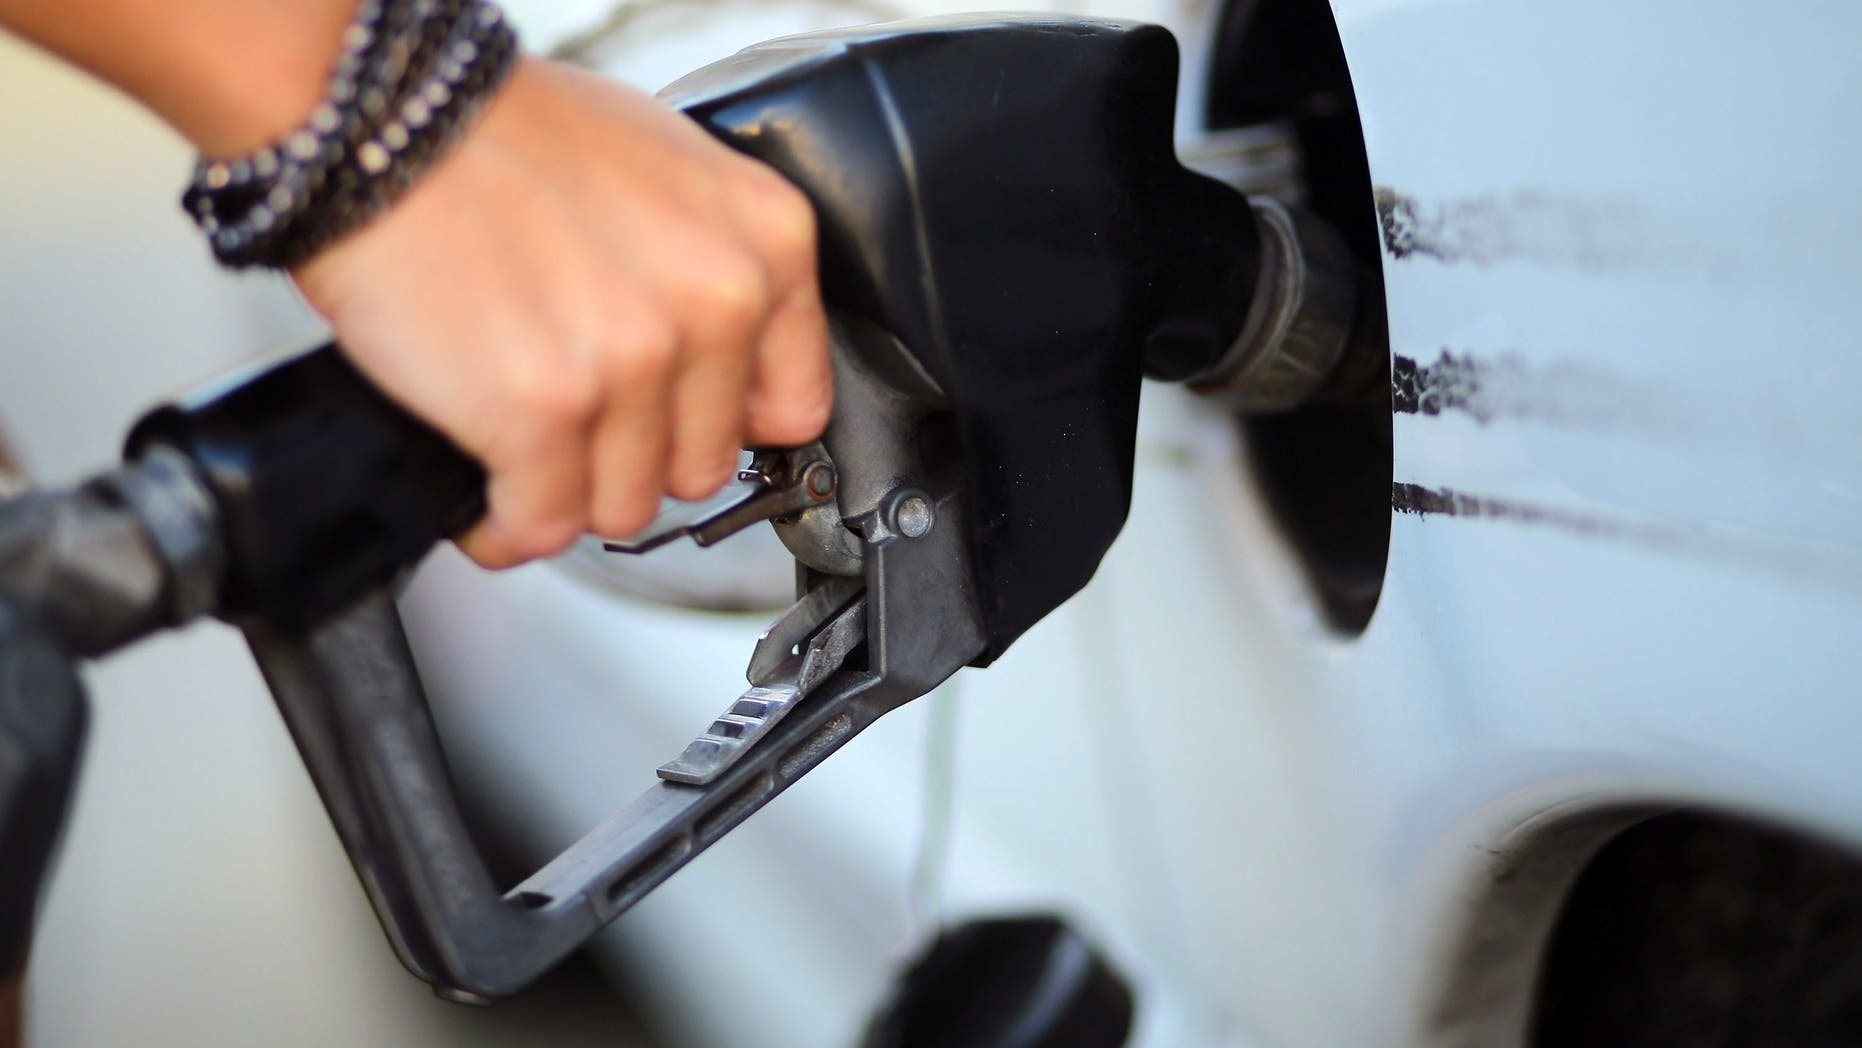 A driver pumps gas in Miami, in Feb. 2013. Prices at the pump reached their lowest level in two years in December at $2.37 and have continued to fall, according to FOX Business. (Getty Images)